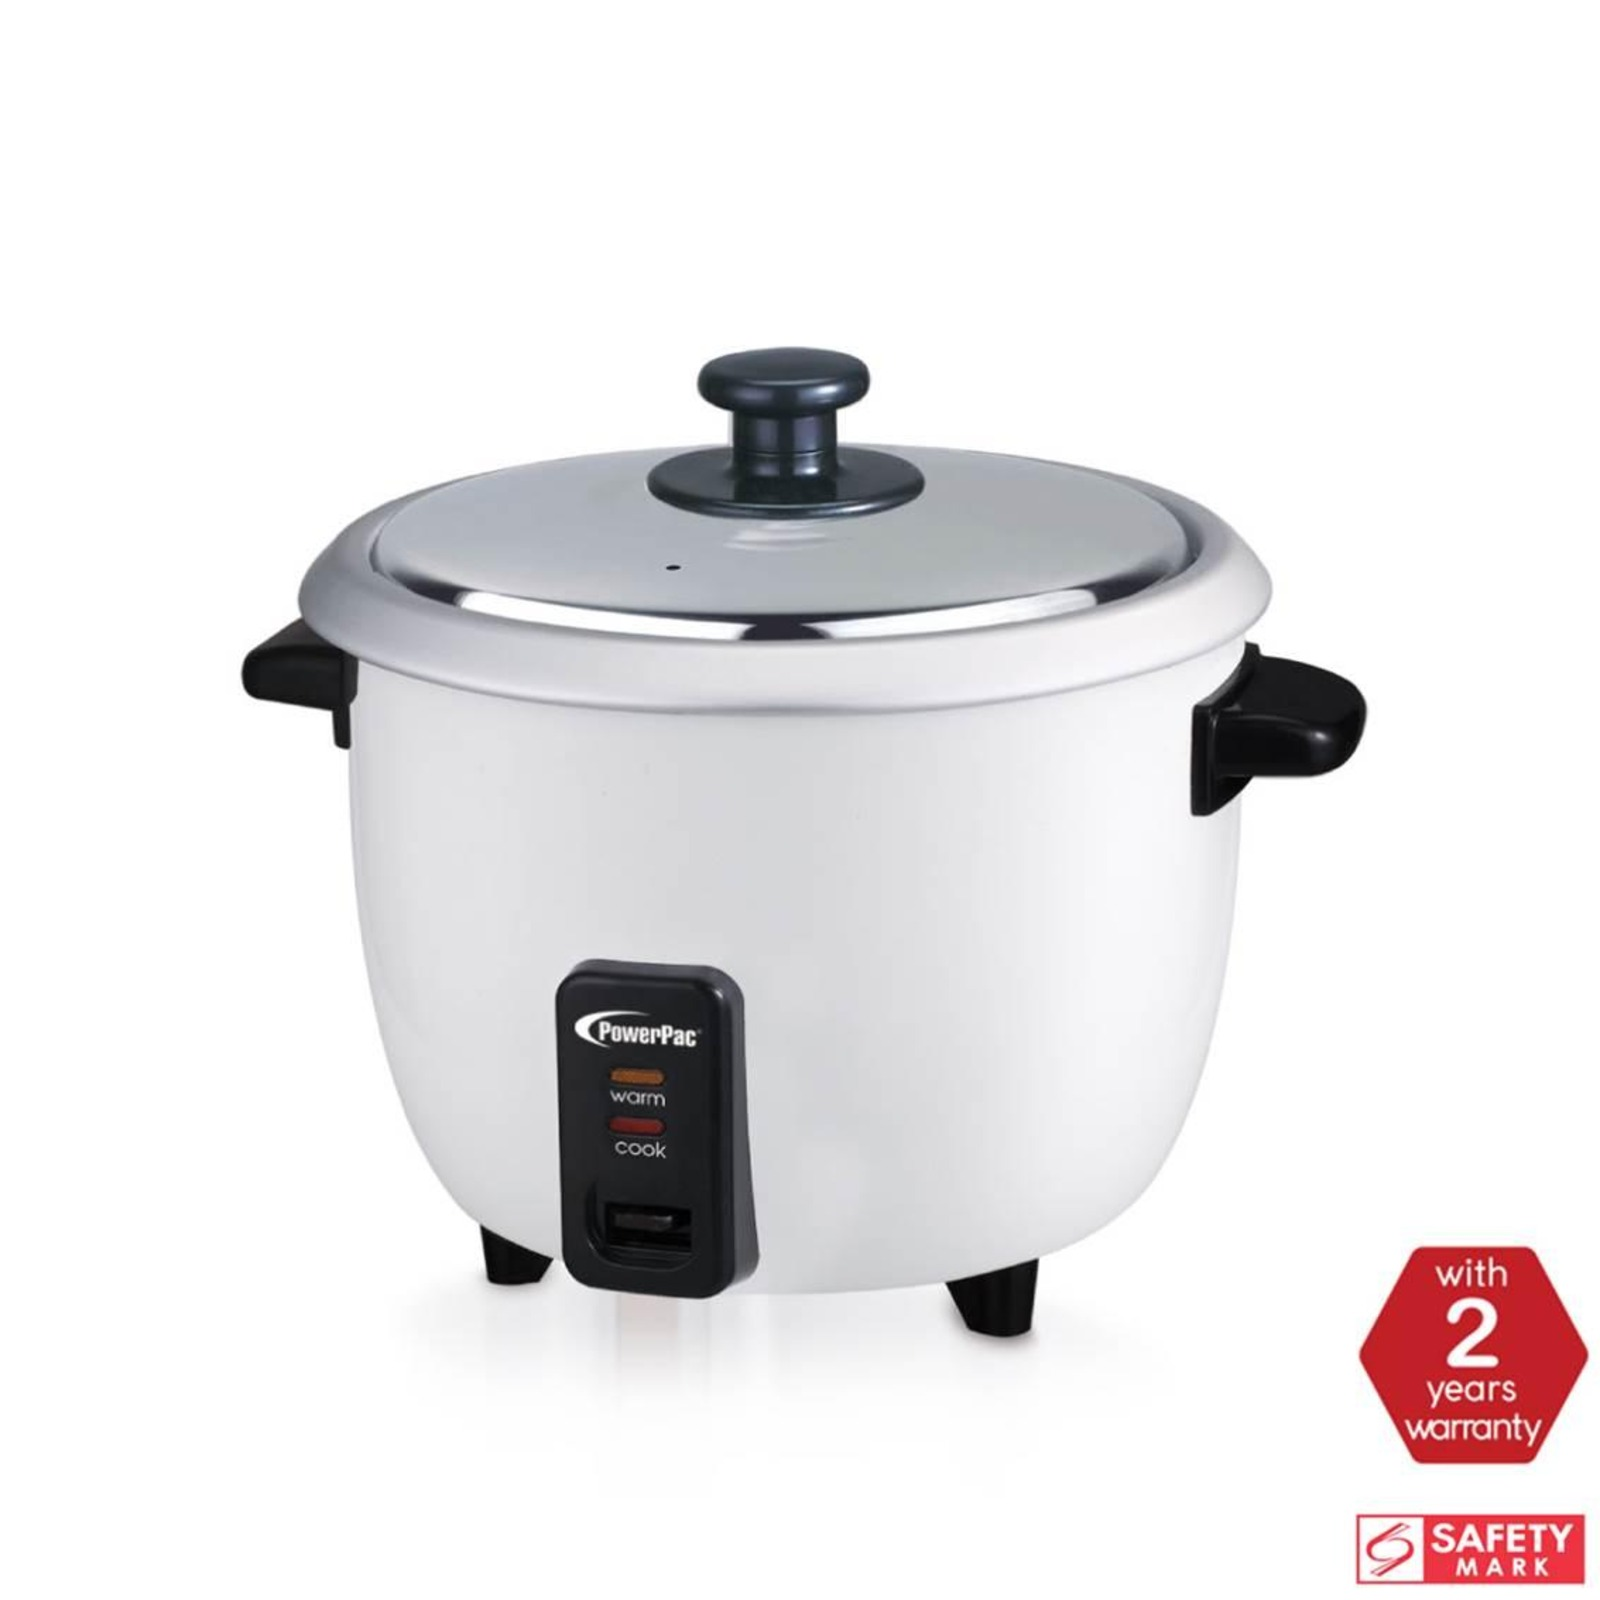 PowerPac (PPRC2) 0.6L Rice Cooker